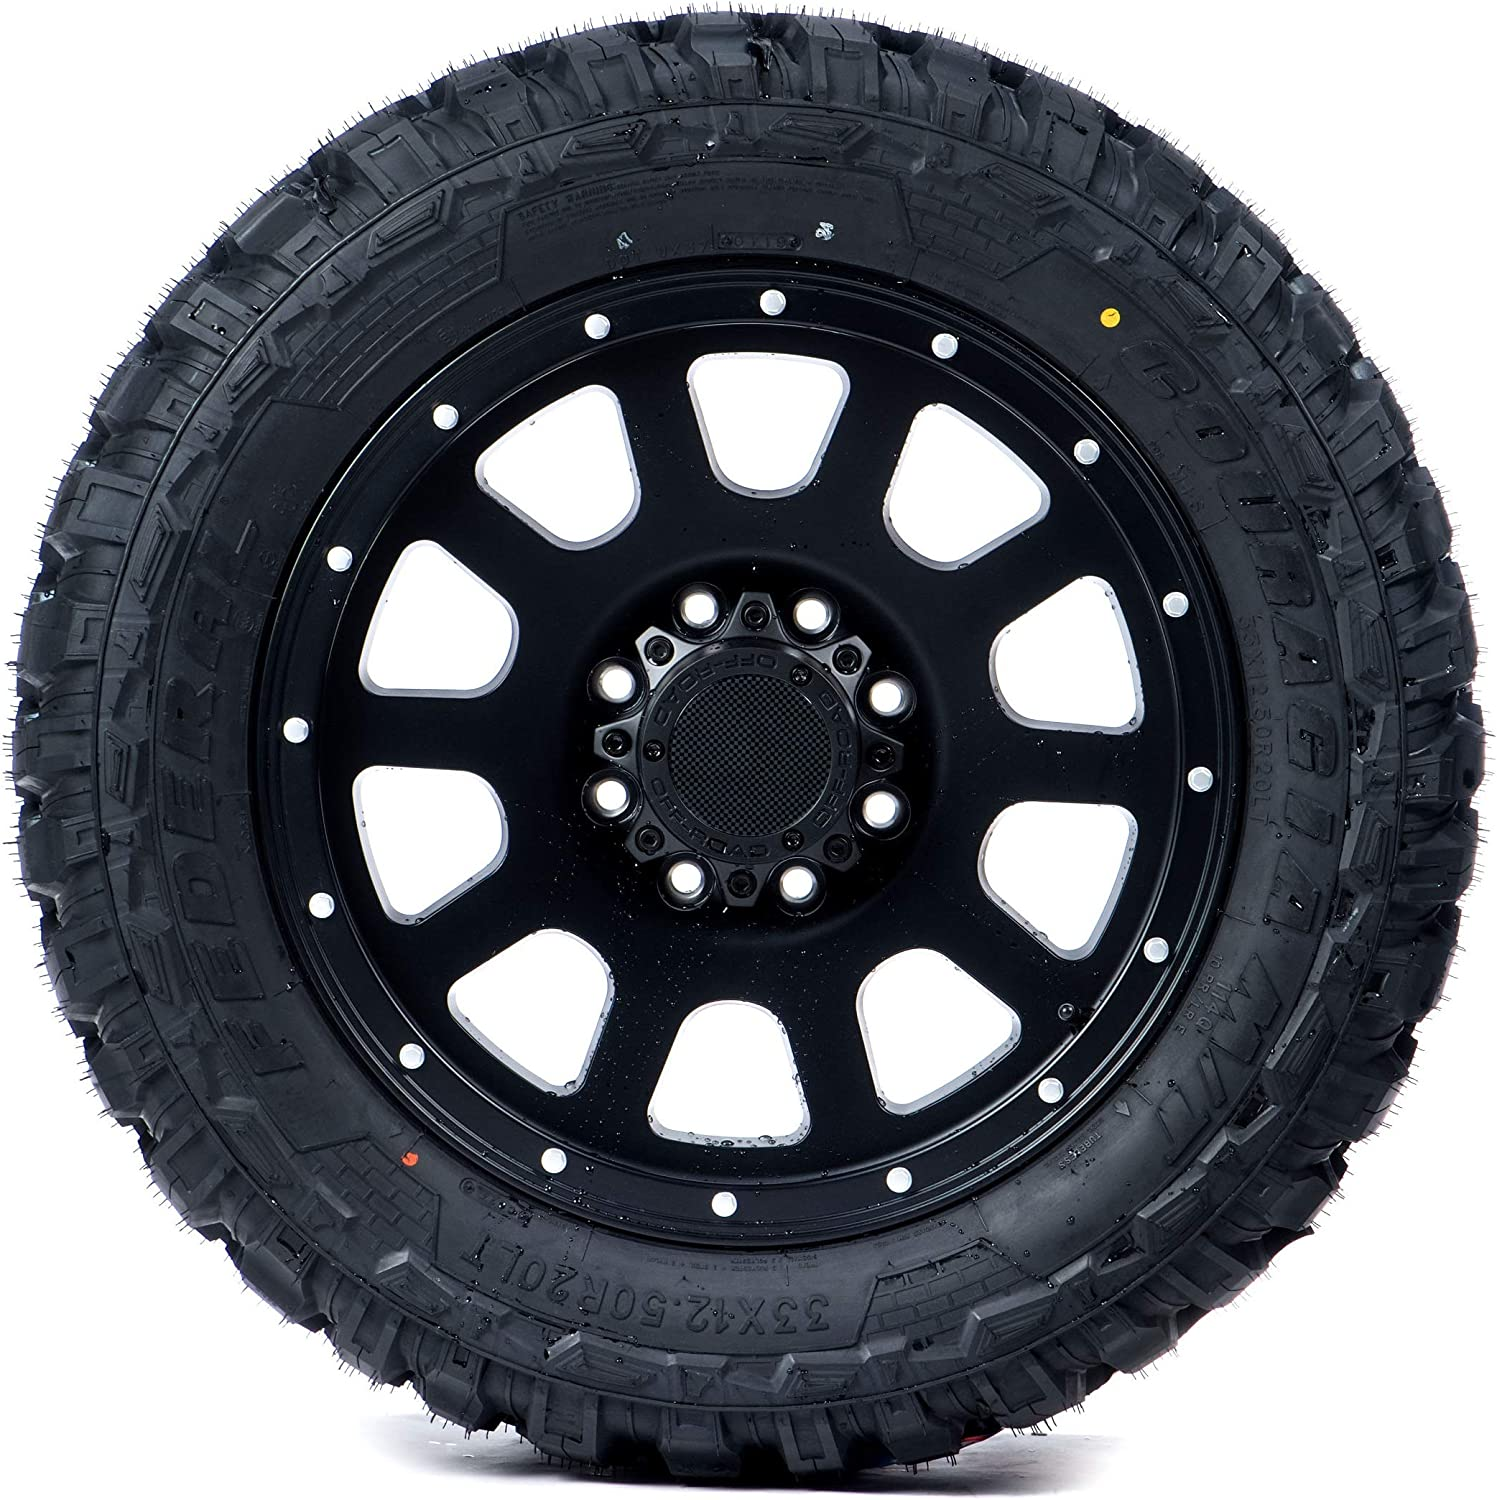 40X15.50R24 E 10ply Federal Couragia M//T Mud-Terrain Tire